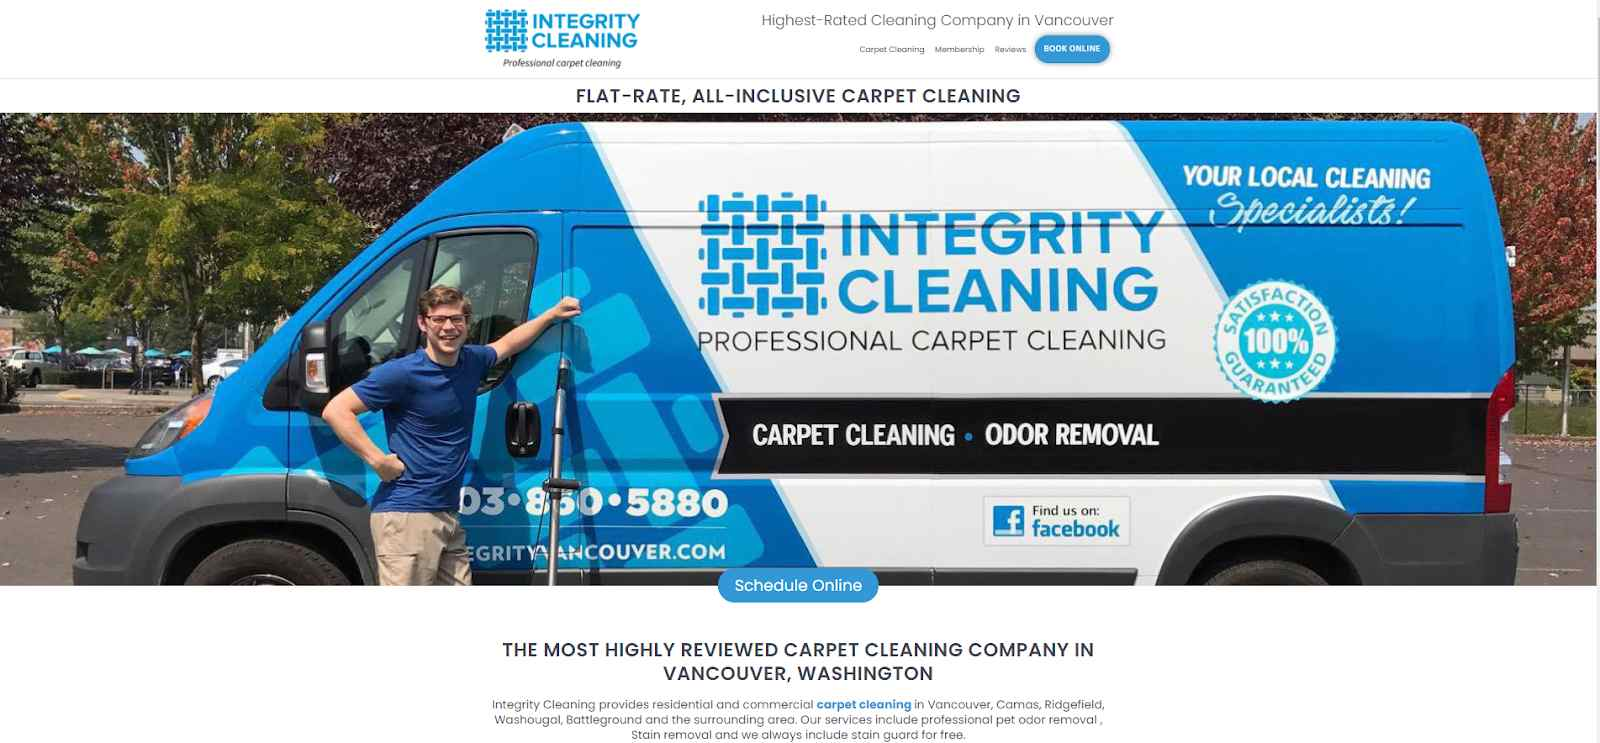 Homepage screenshot of Integrity Cleaning using their own photo on their website for their cleaning company.